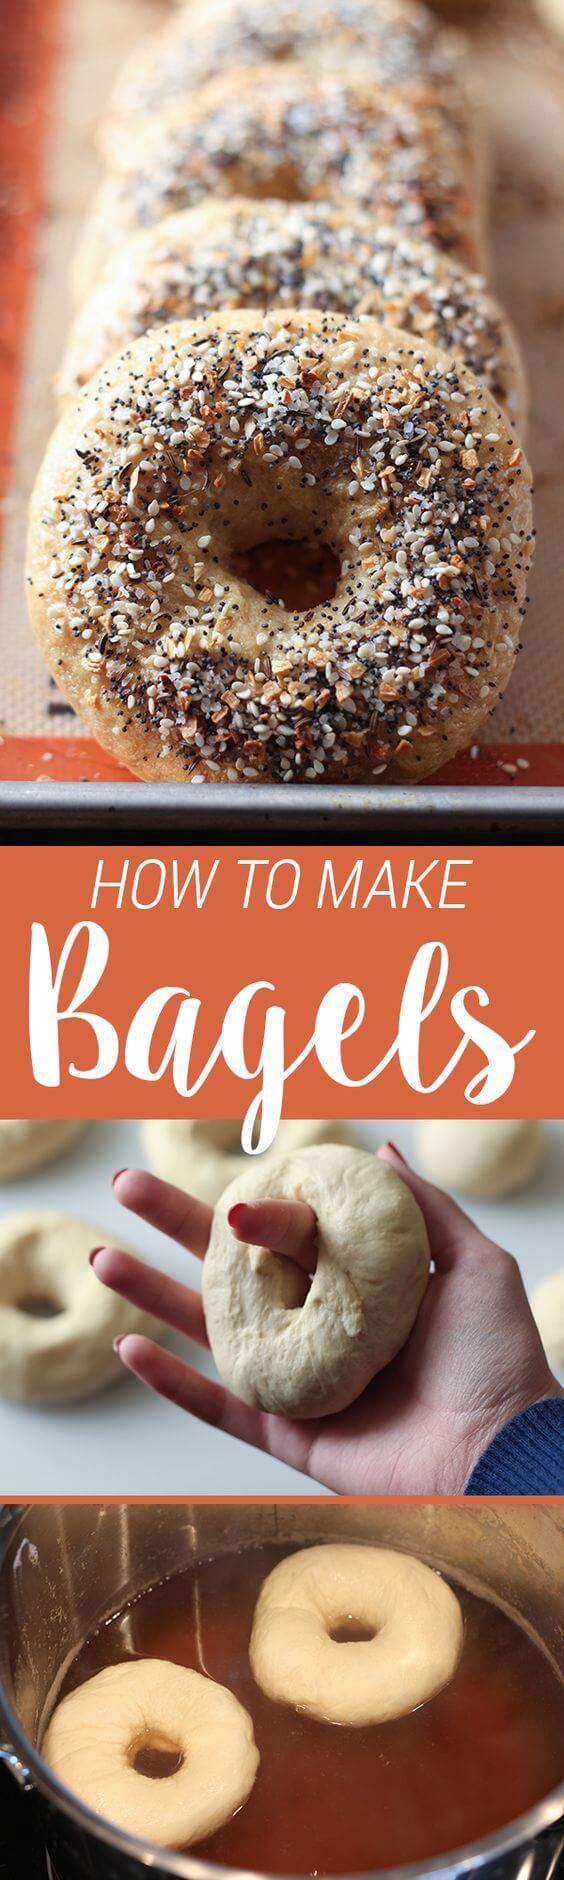 nice How to Make Bagels